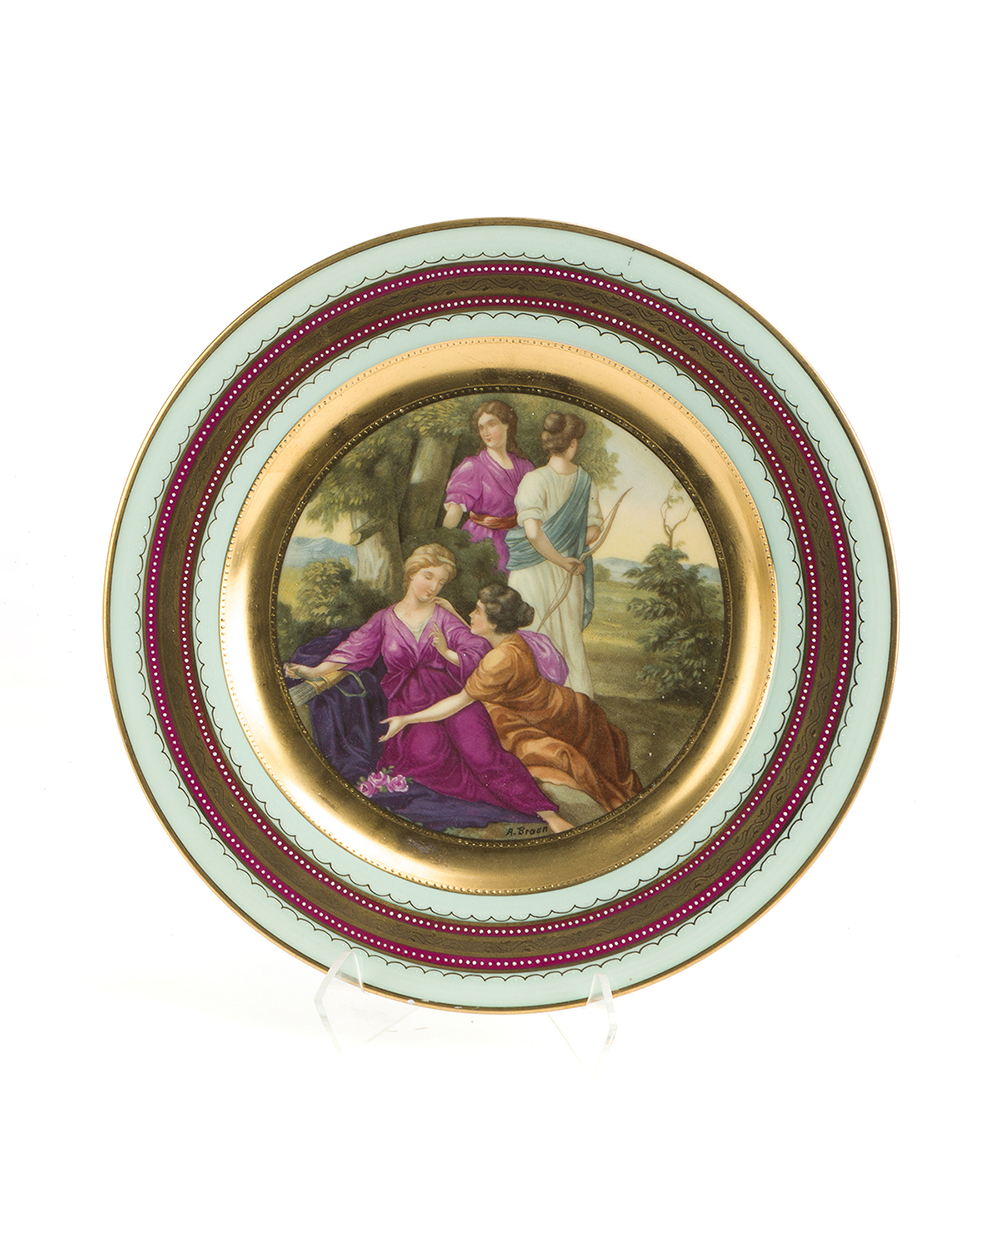 Lot 1046 - A Royal Vienna-style cabinet plate